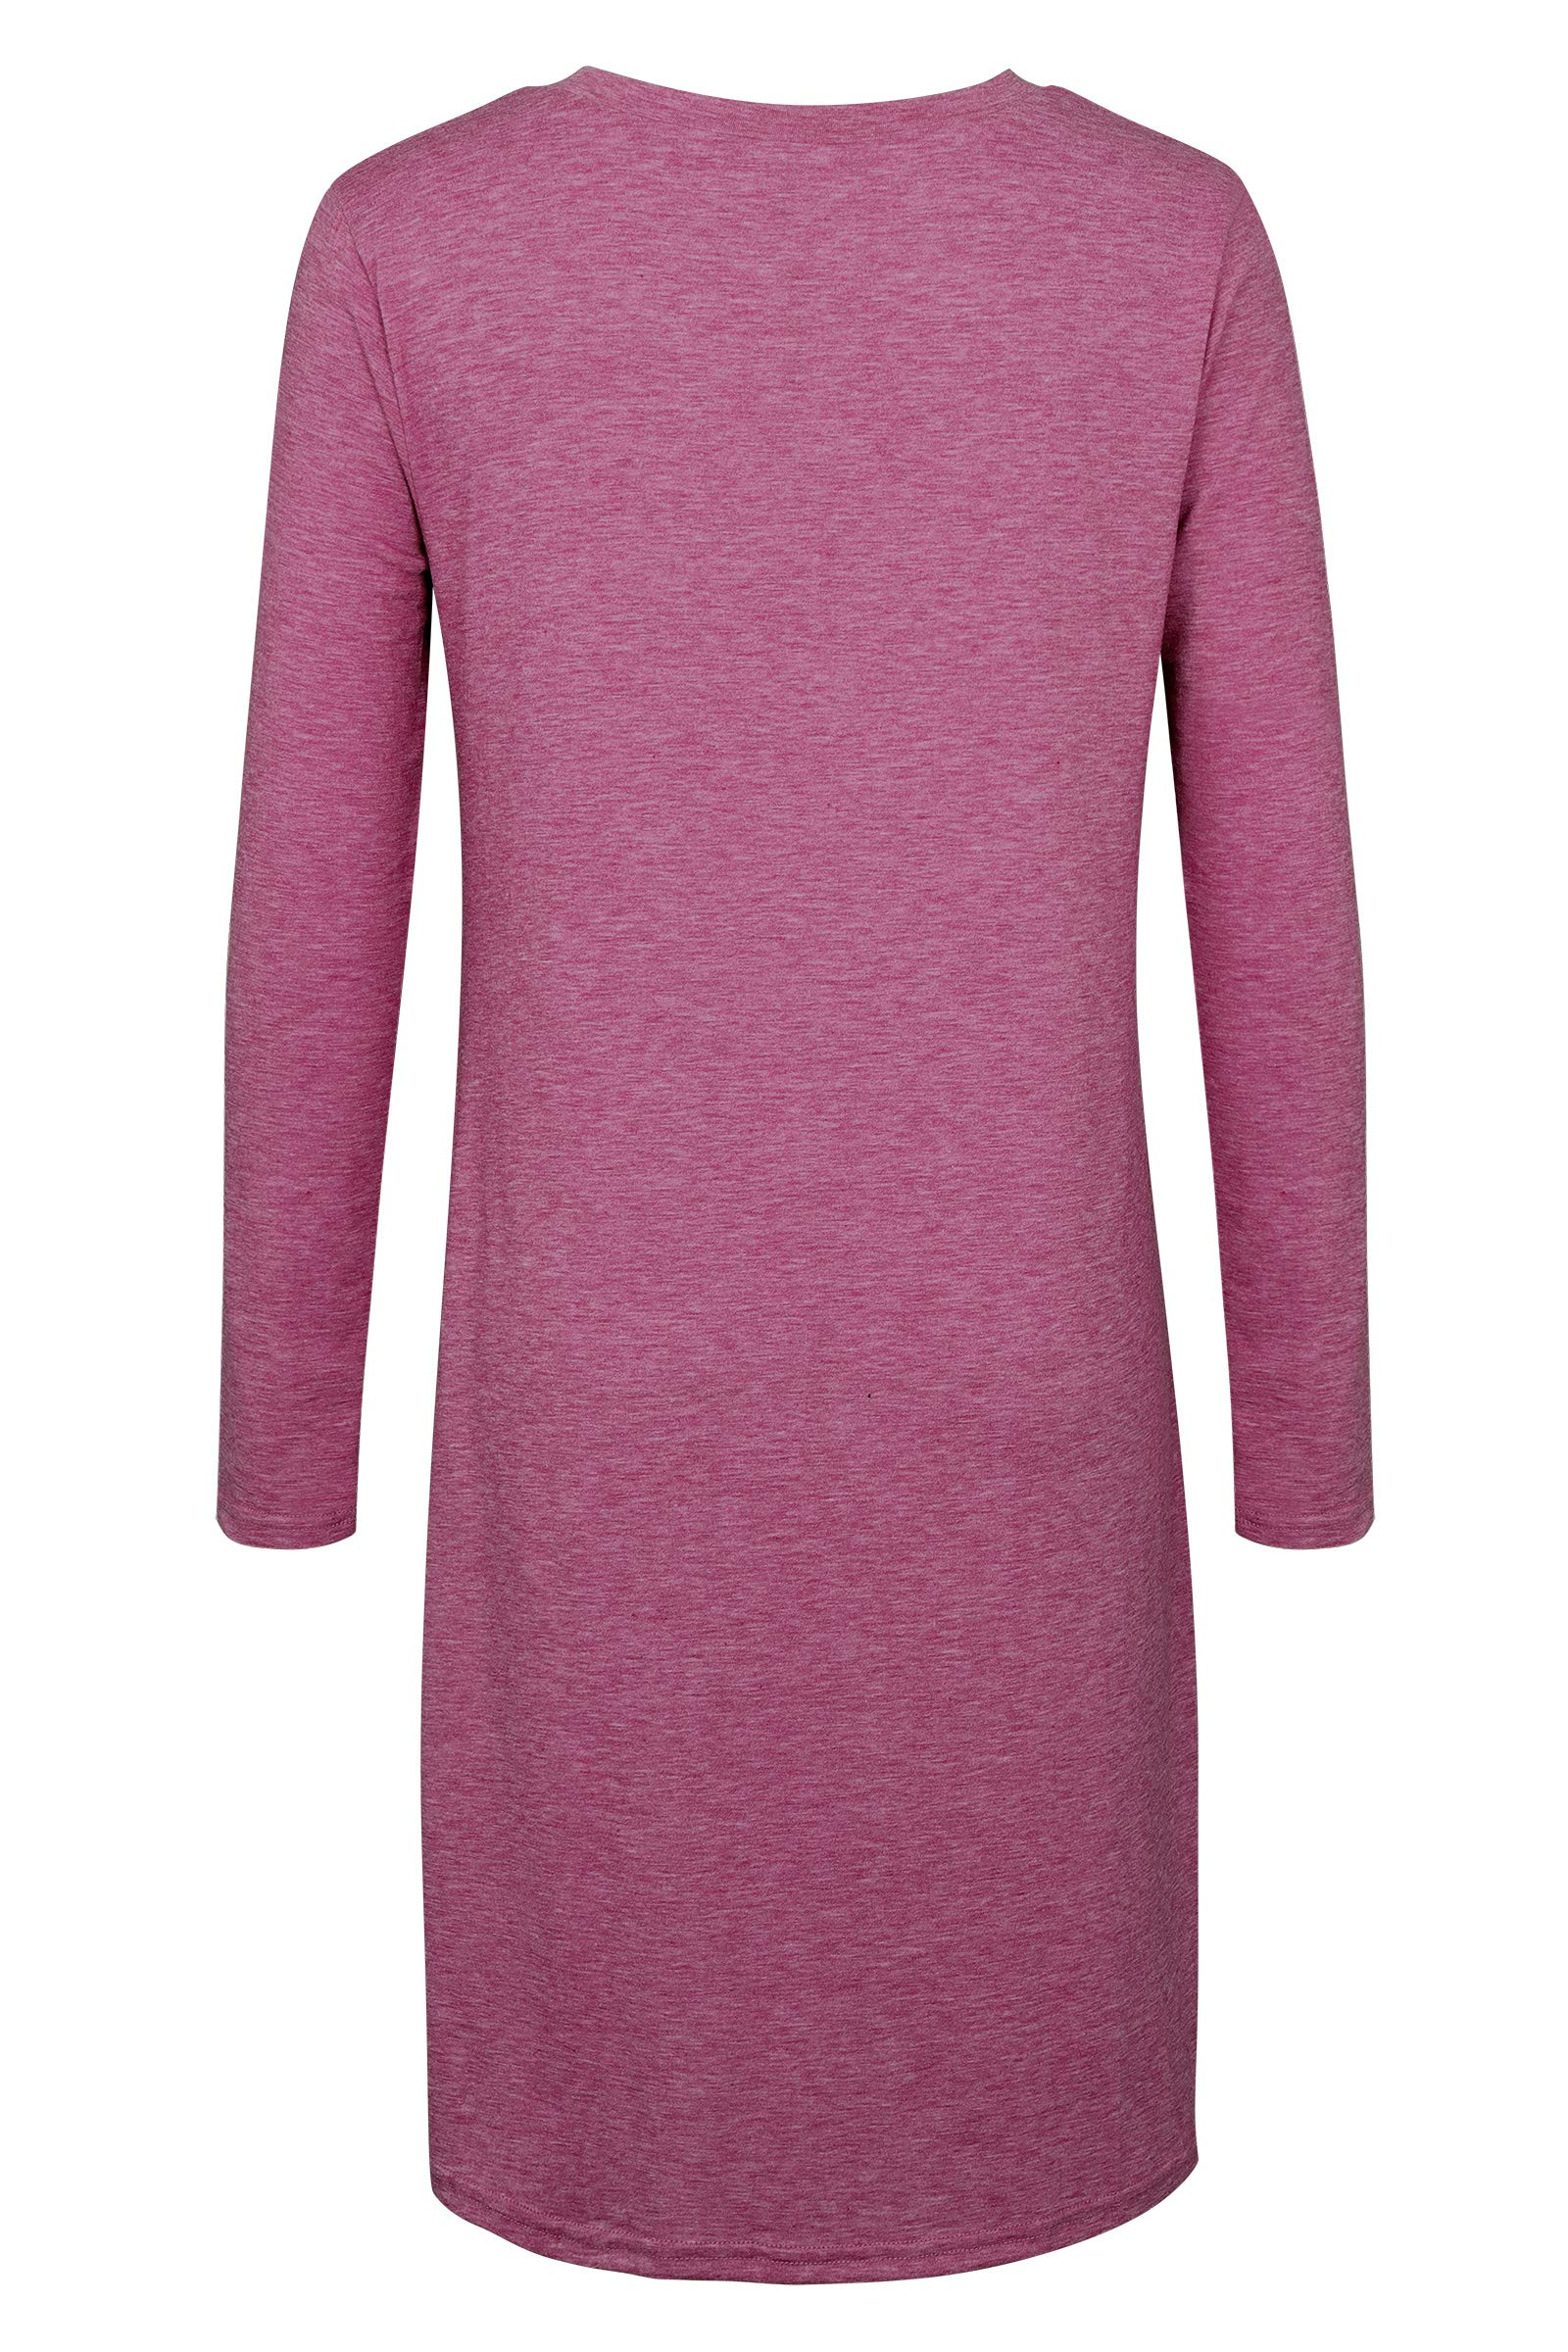 Women\'s Long Sleeve Casual Loose Knitted Twist Knot Tunics Shirt Dress Top Wine